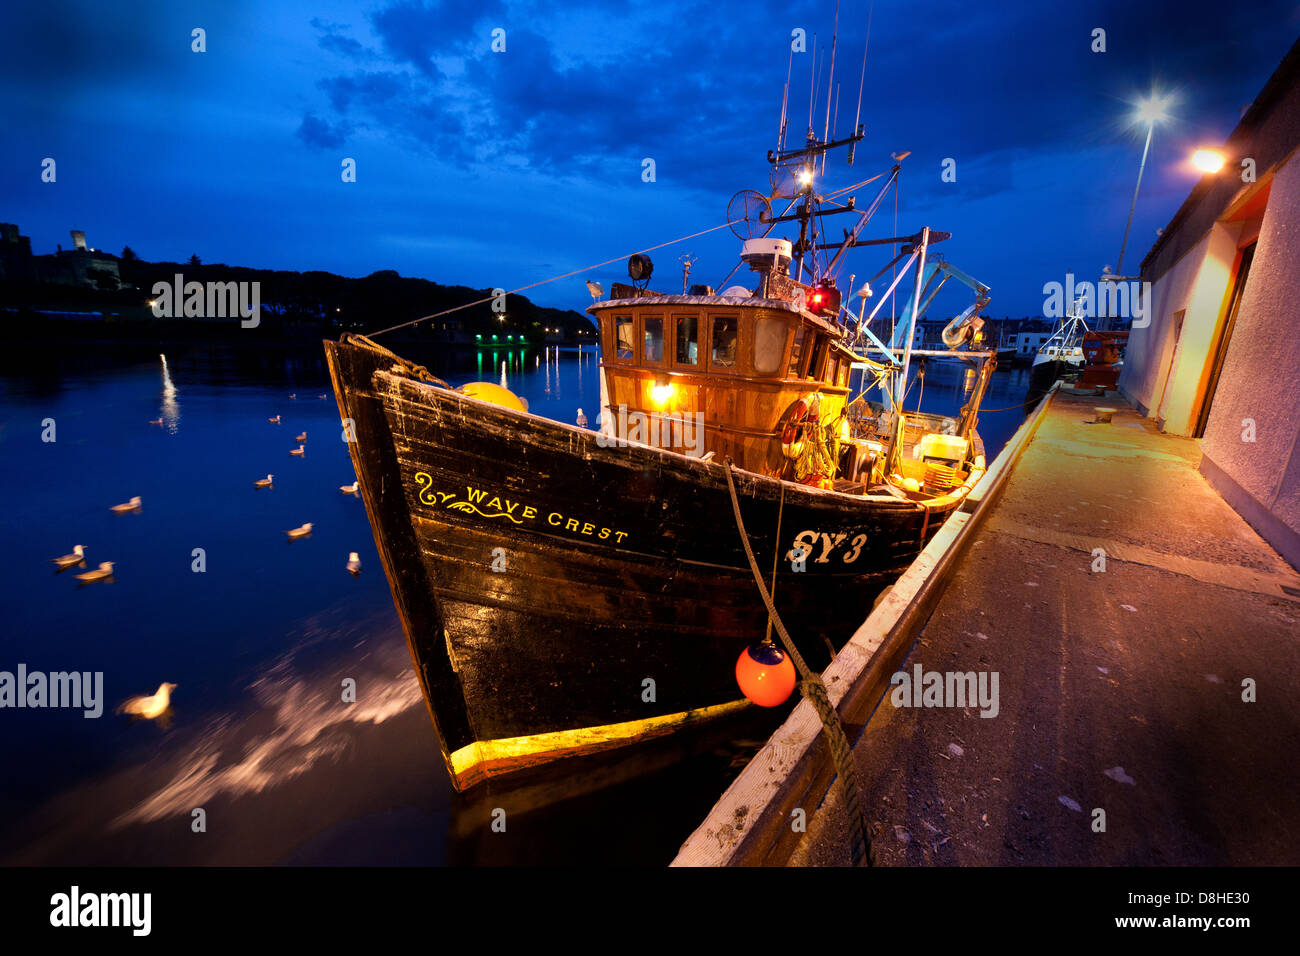 Wave,Crest,Trawler,docked,at,Stornoway,Fishing,Port,&,Harbour,at,dusk,SY3,night,shot,nightshot,sea,gulls,seagulls,feeding,on,waste,fish,thrown,back,HHP,CNES,historic,outer,hebrides,hebridean,hebridan,Western,Isles,fishing,industry,fisheries,fishermen,boat,boats,evening,dramatic,gotonysmith,mixed,lighting,tripod,blue,hour,bluehour,sky,Lewis,castle,town,capital,Scotland,scottish,islands,ferry,tours,tourism,product,products,culture,gaelic,language,EU,Fishing,quota,Brexit,freedom,British,waters,territory,territorial,rights,borders,border,sovereignty,iconic,Alba,Celtic,@HotpixUK,HotpixUK,tour,tourist,attraction,travel,fish,harbour,maritime,Steòrnabhagh,Na h-Eileanan Siar,Western Isles,Leòdhas,Eilean,CNES,Alba,Buy Pictures of,Buy Images Of,territorial waters,Scotlands History,Scotlands History,Eilean Leòdhais,Stornoway town